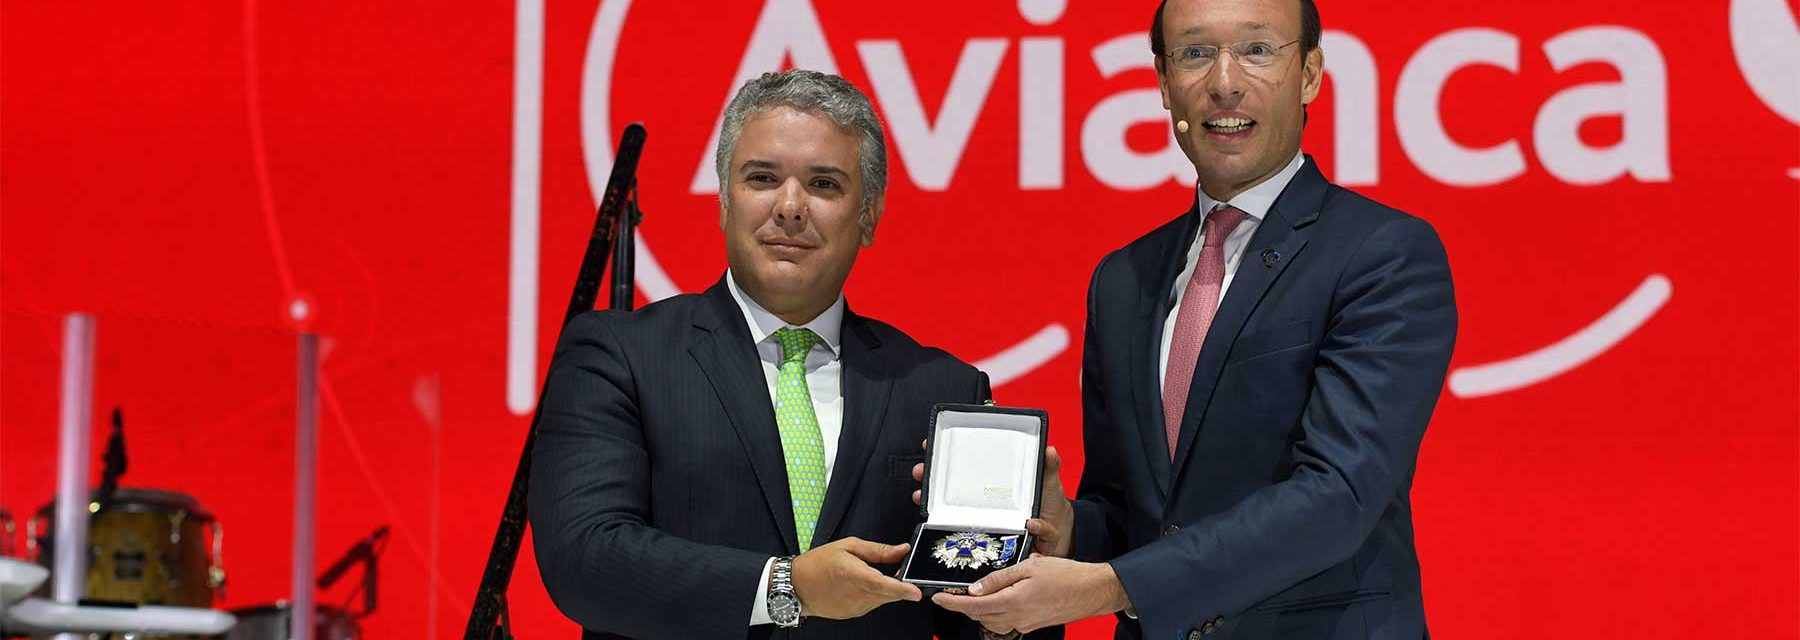 Iván Duque, Avianca.